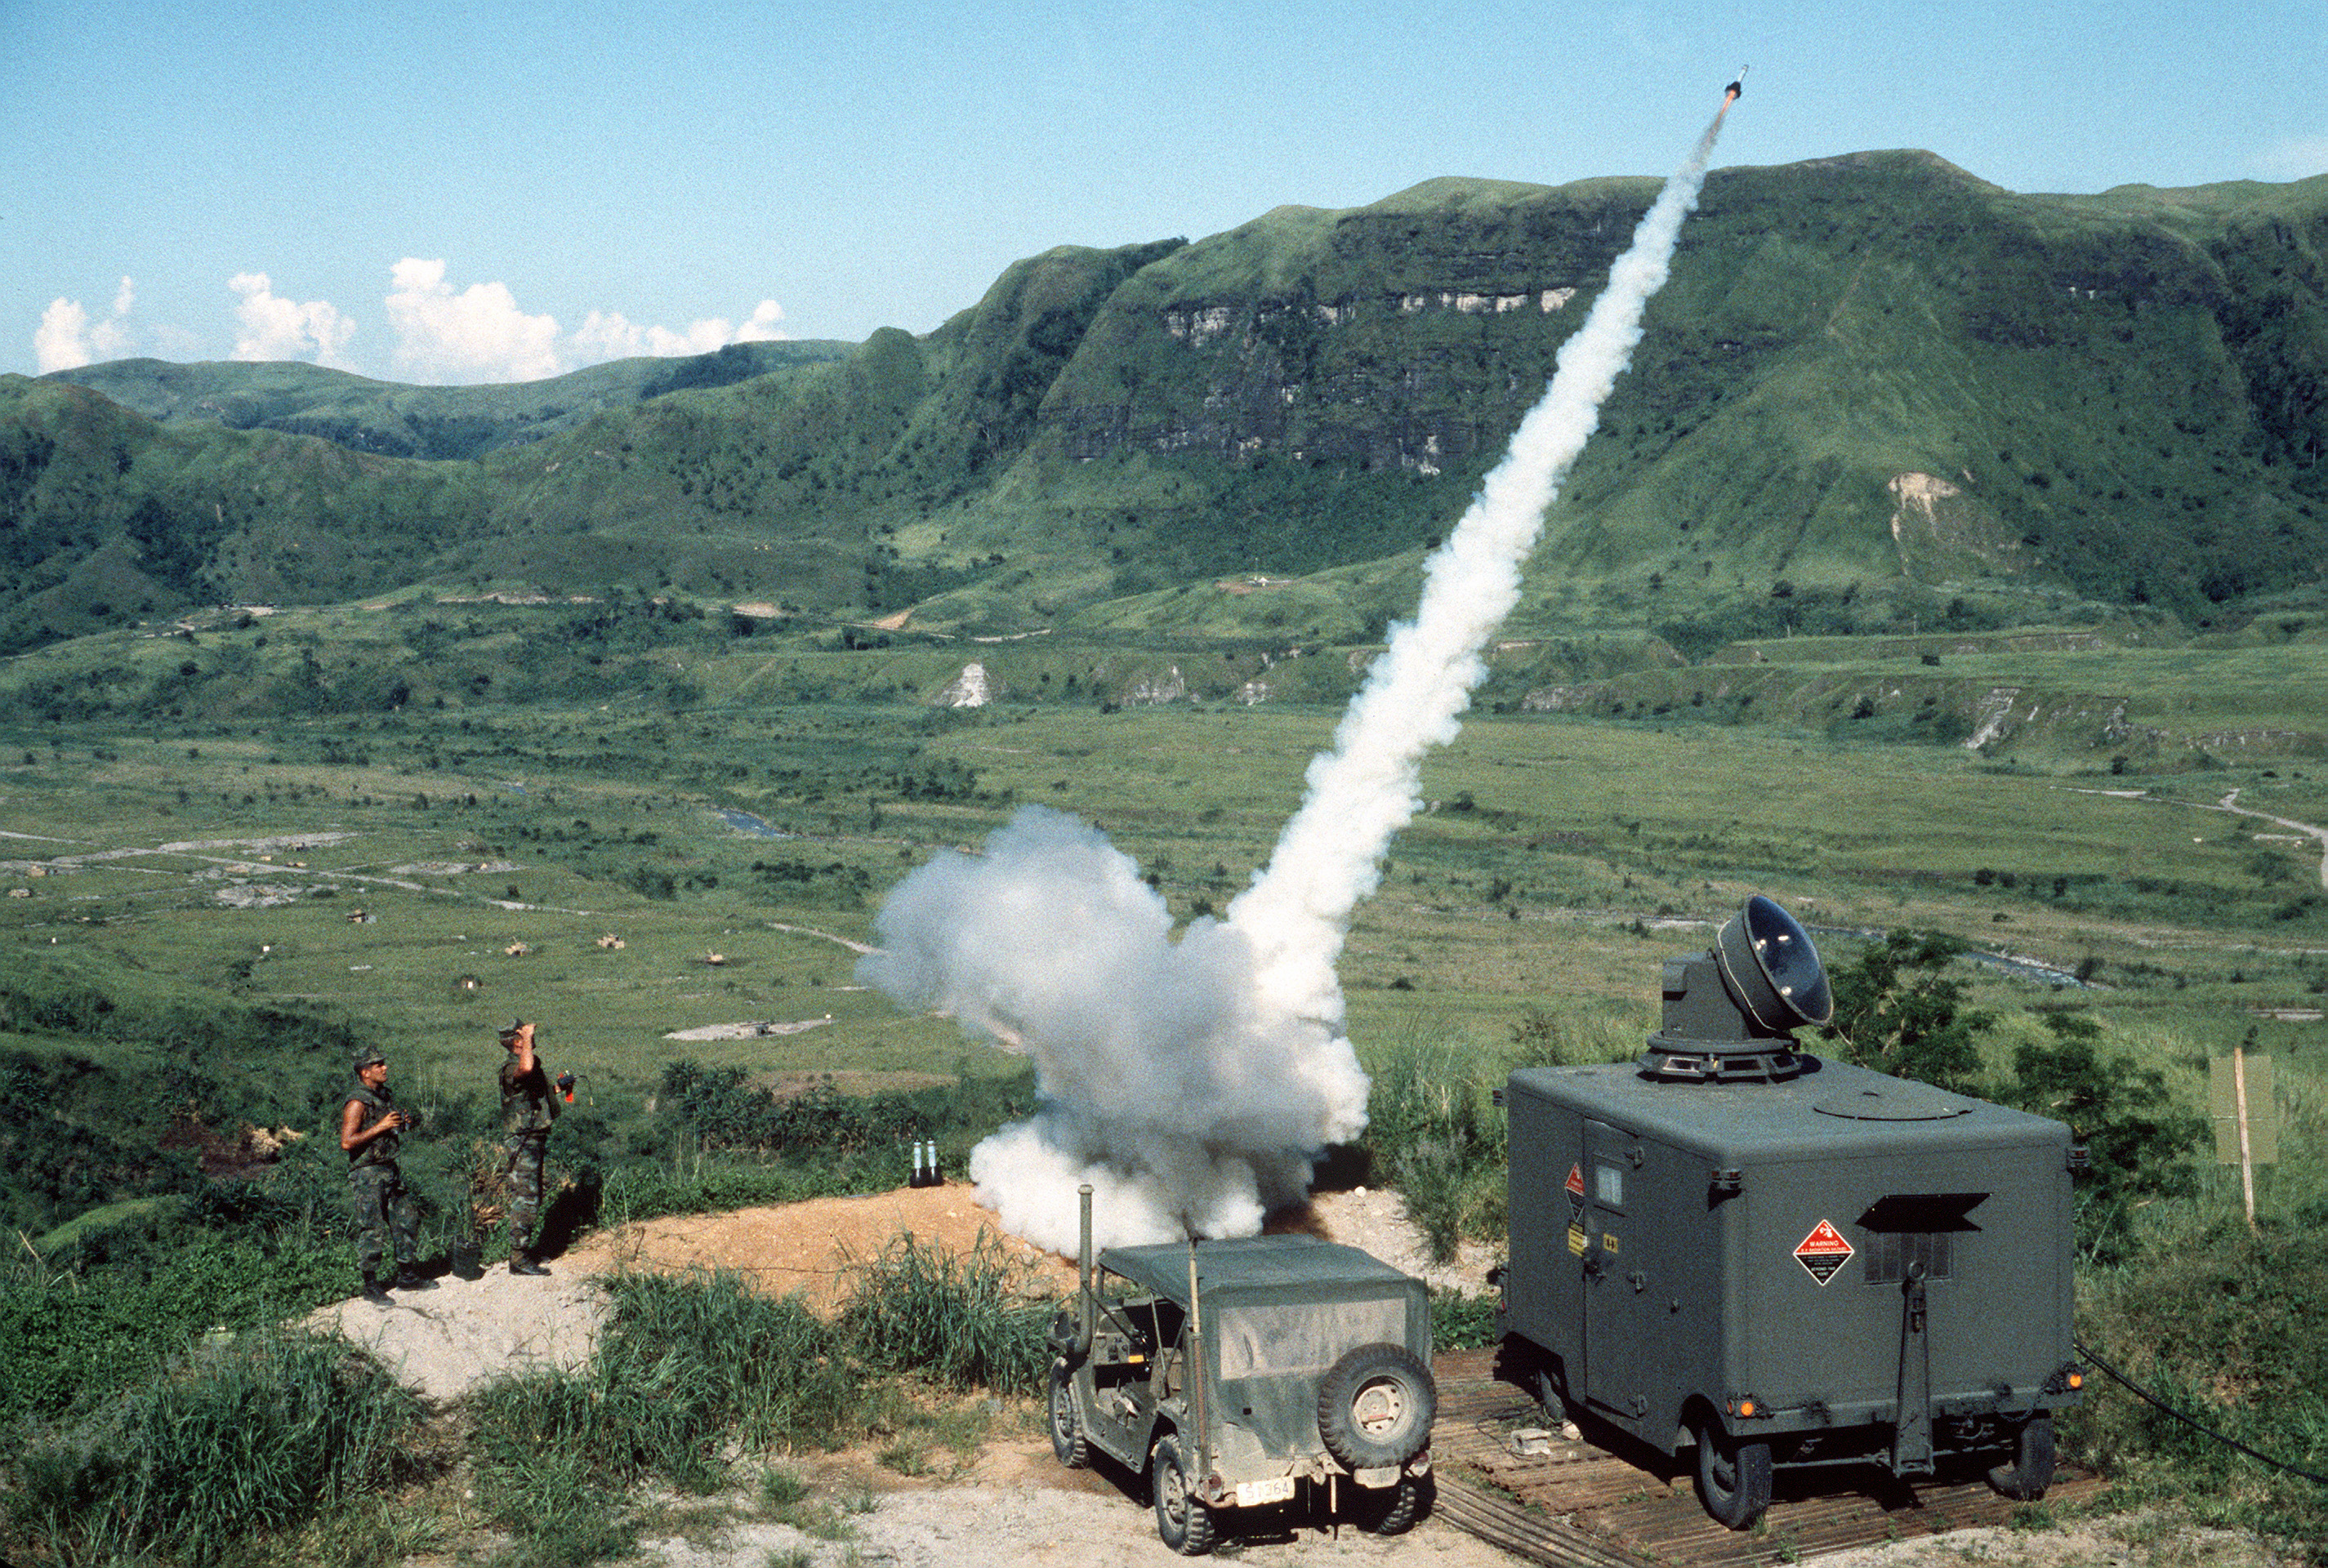 http://upload.wikimedia.org/wikipedia/commons/a/aa/GTR-18_launch_Crow_Valley_Philippines_1984.JPEG